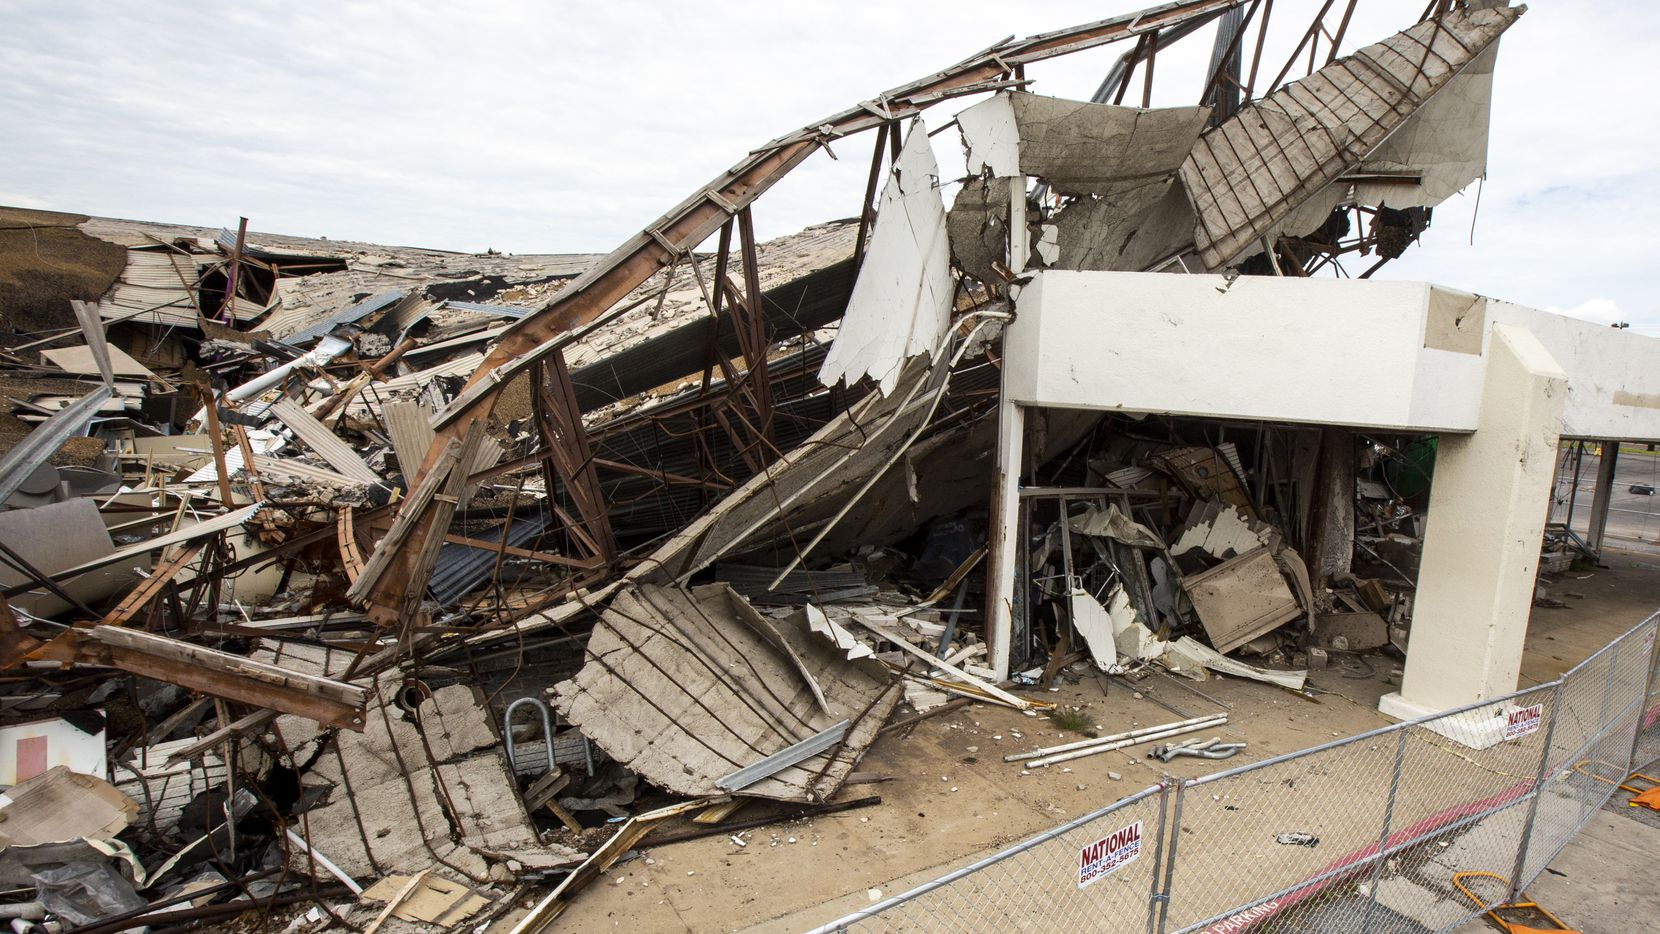 The Marsh Lane Plaza shopping center remains in complete disrepair from damage sustained during the October 2019 tornado in Dallas on Monday, April 7, 2020.